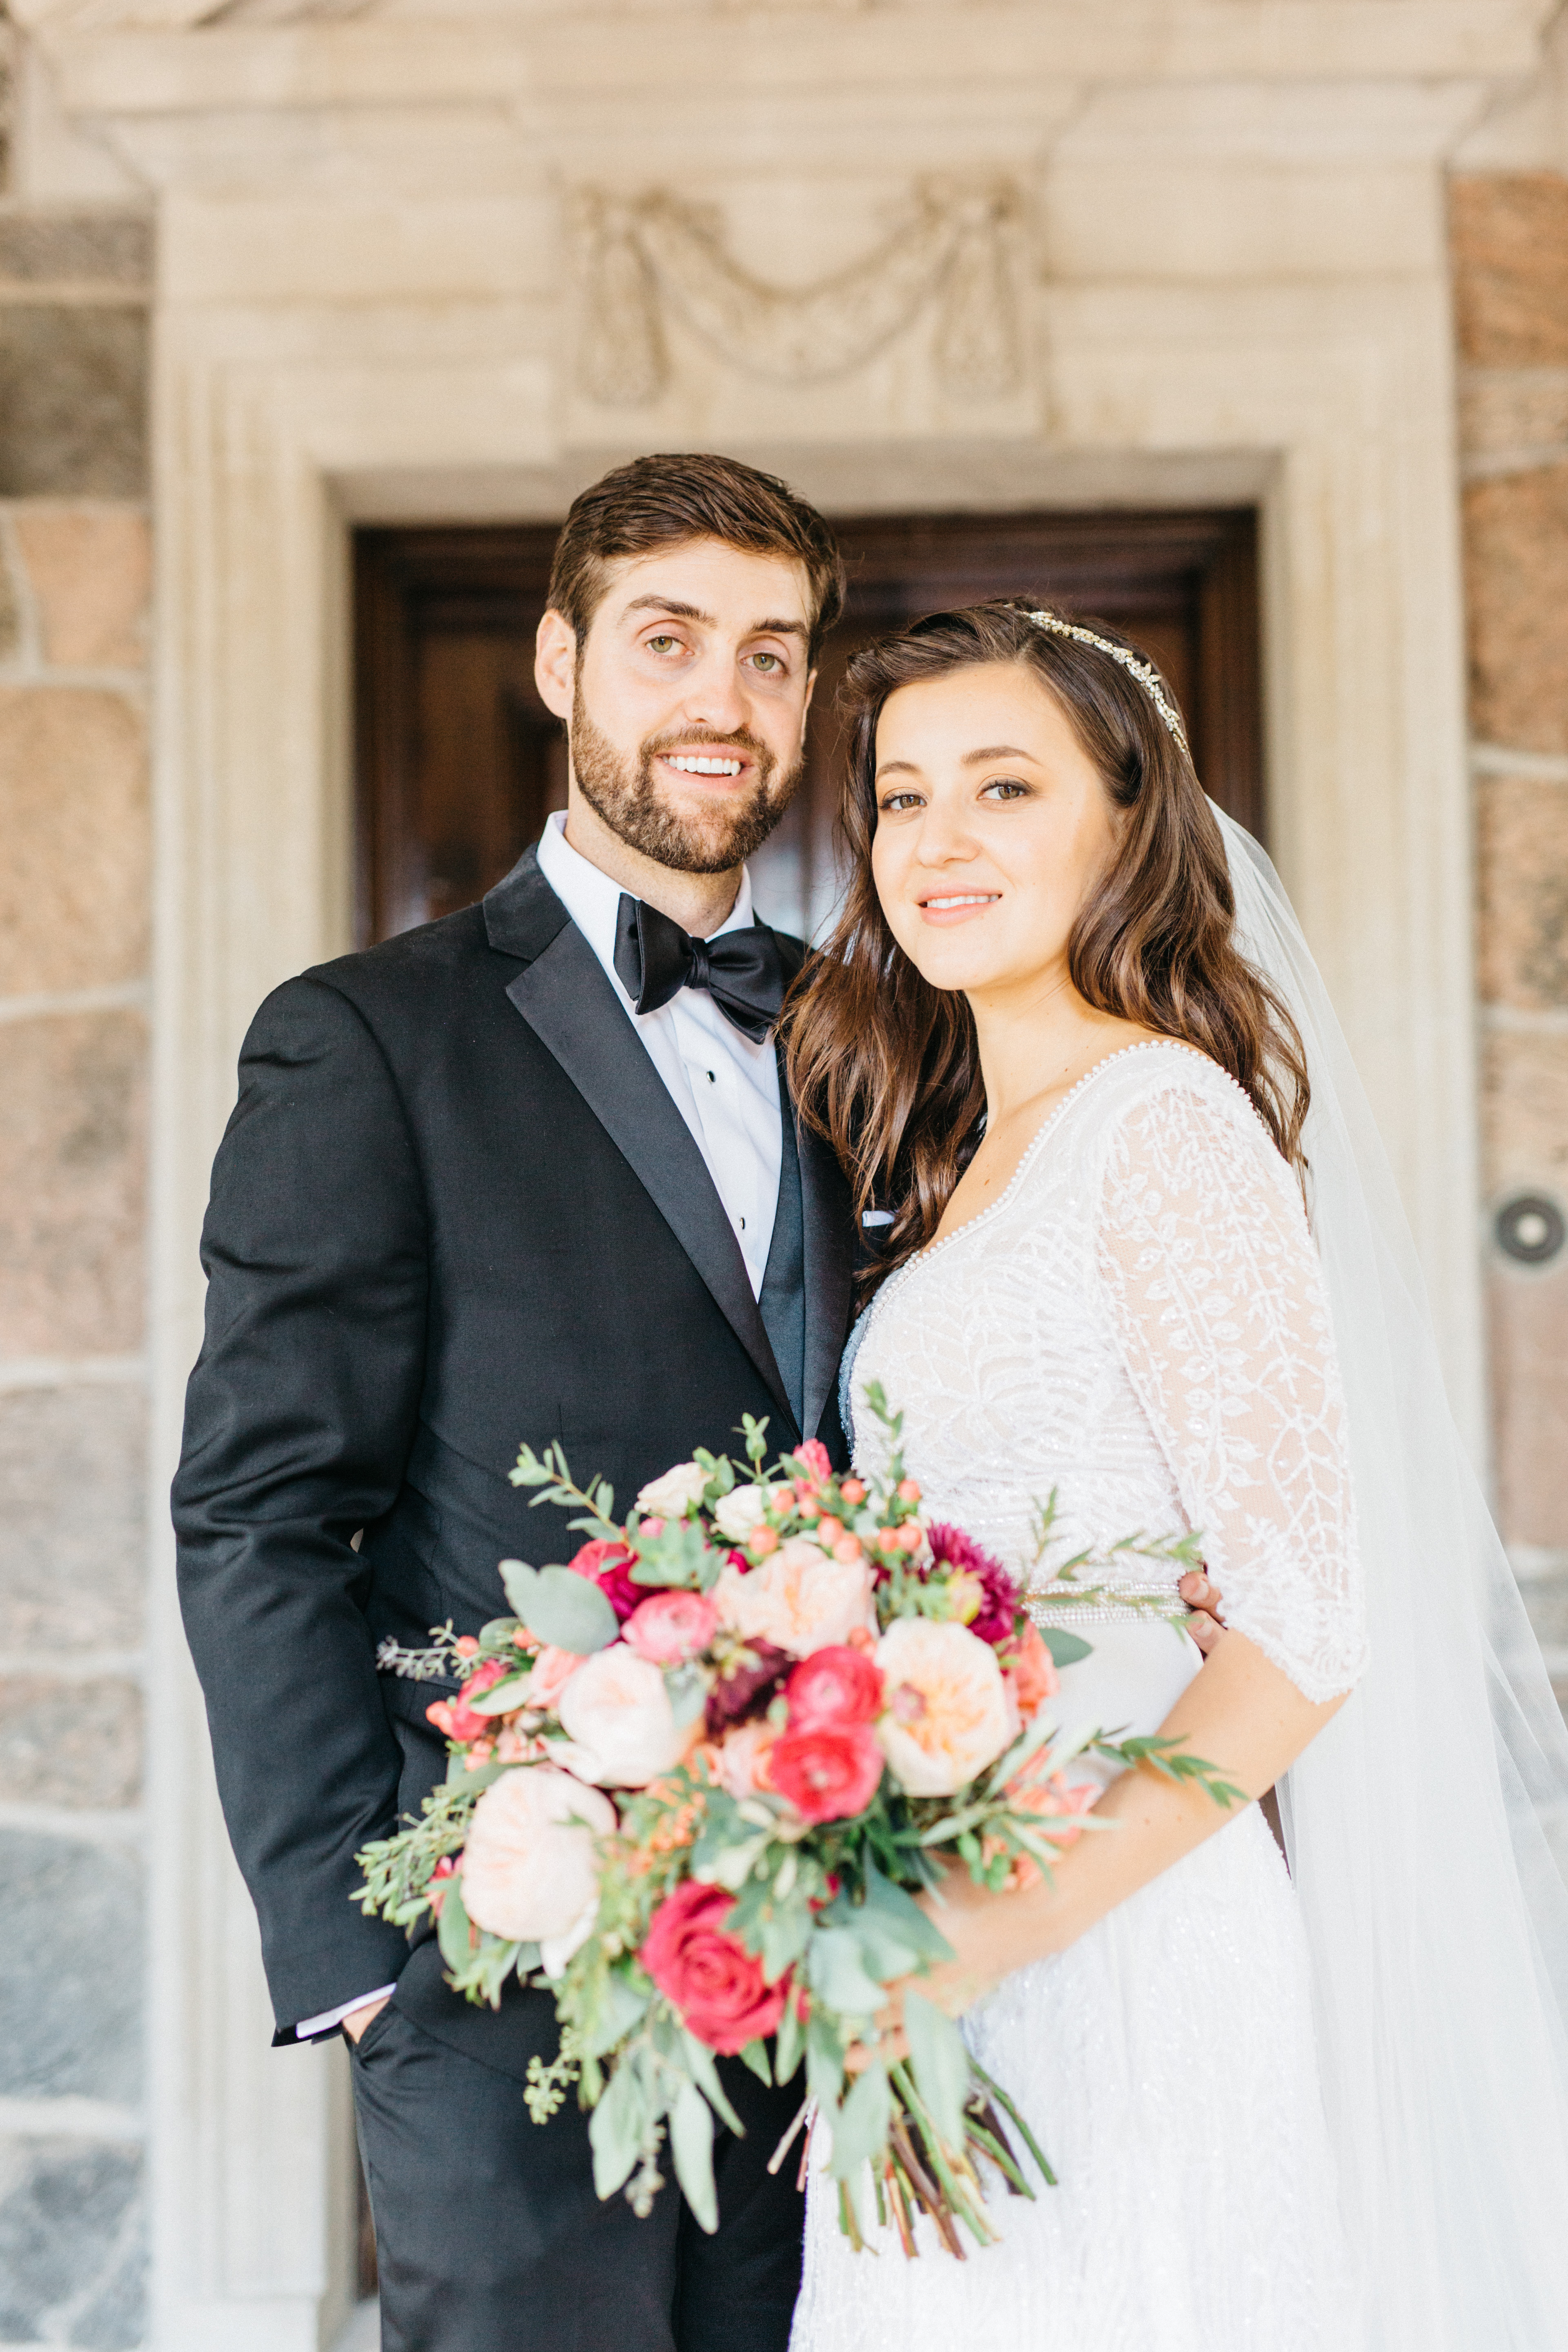 Bride and groom smiling at front steps at Graydon Hall Manor